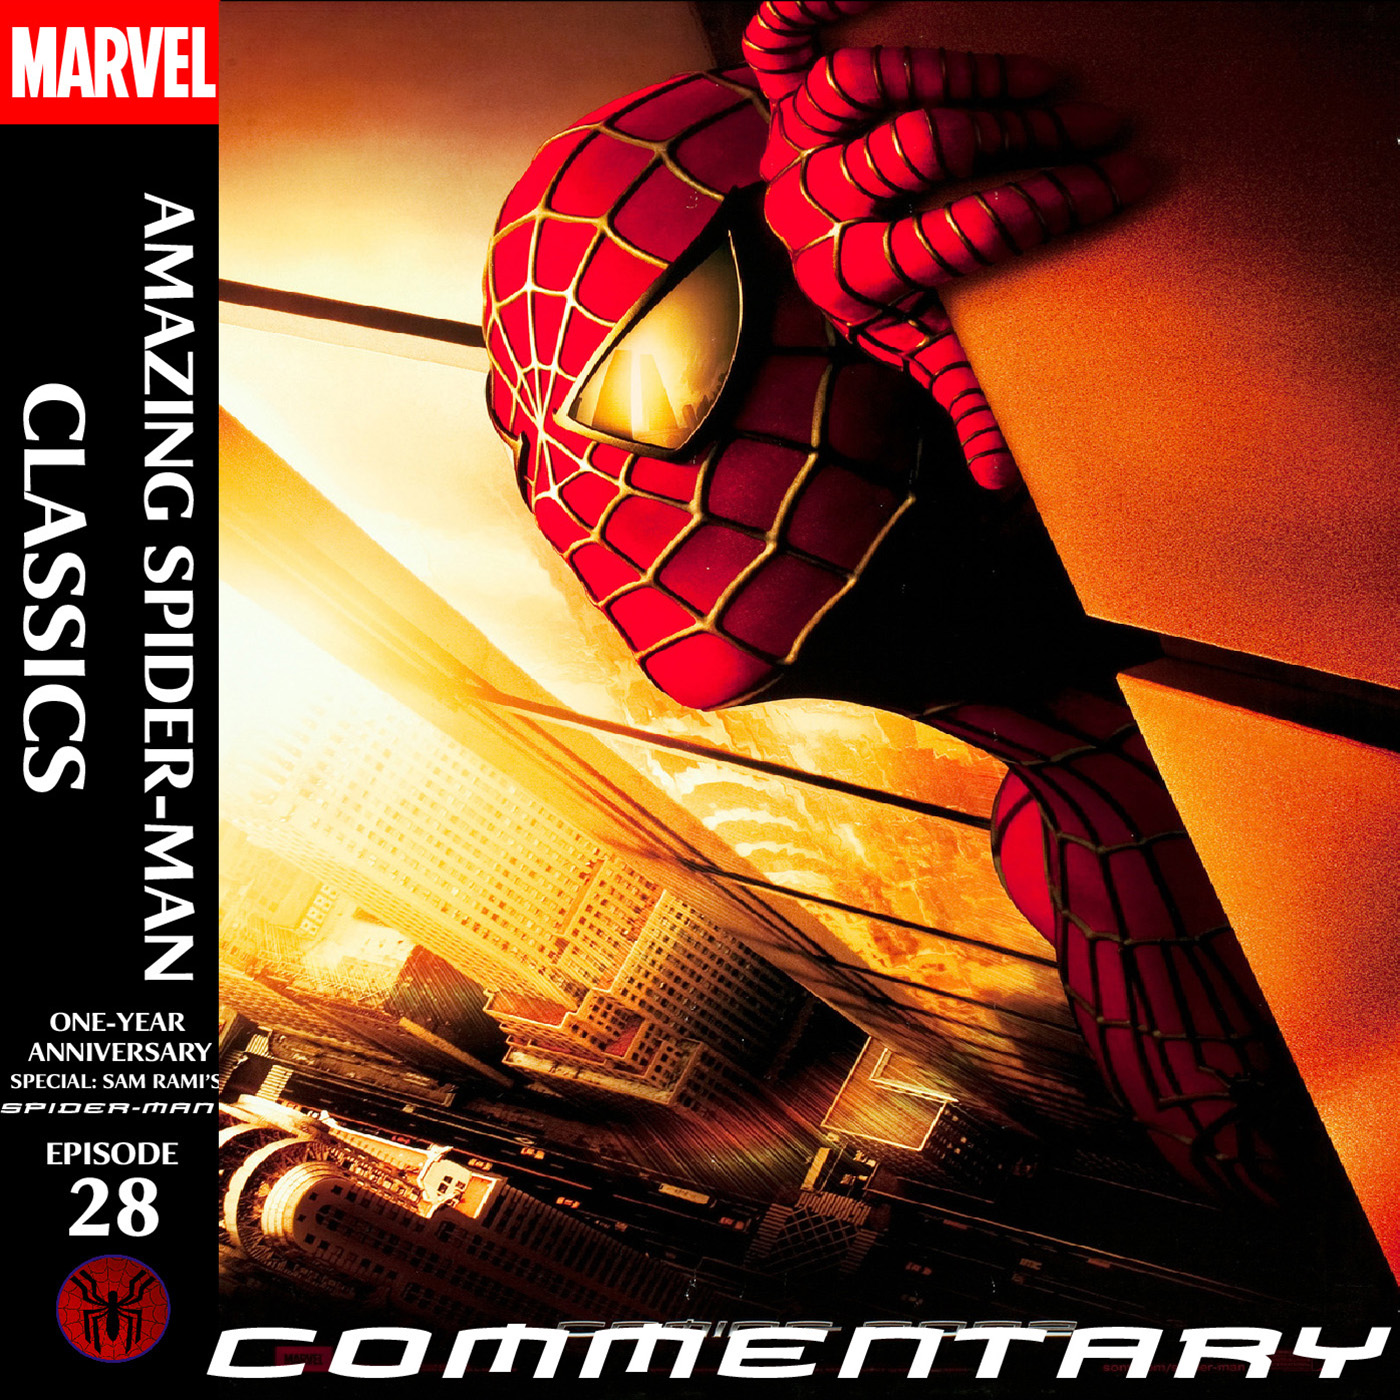 ASM Classics Episode 28: One-Year Anniversary Special: Sam Rami's Spider-Man DVD-Style Commentary